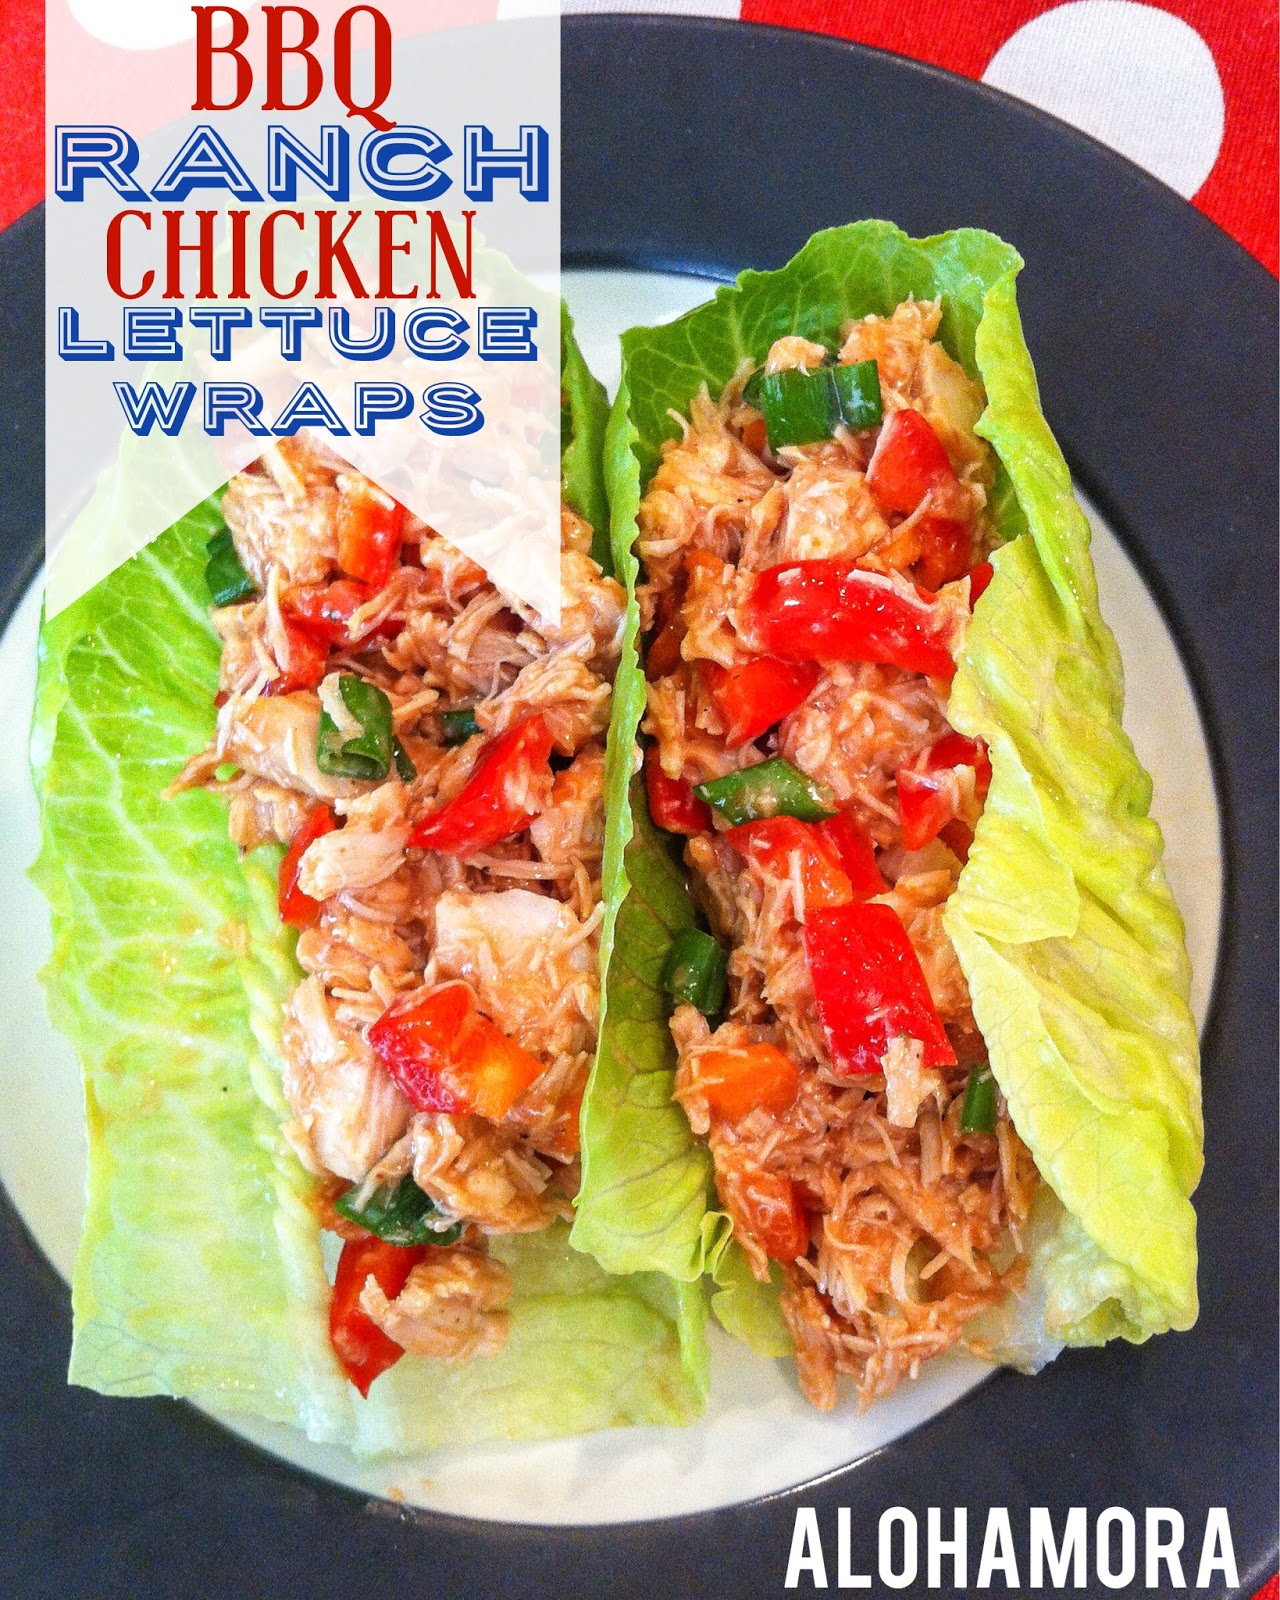 Lite and Healthy BBQ Ranch Chicken Lettuce Wraps or Salad.  Make it in 10 minutes, and no need to turn on the oven.  Flavorful, delicious, kid friendly, and all around tasty.  Alohamora Open a Book.  http://www.alohamoraopenabook.blogspot.com/